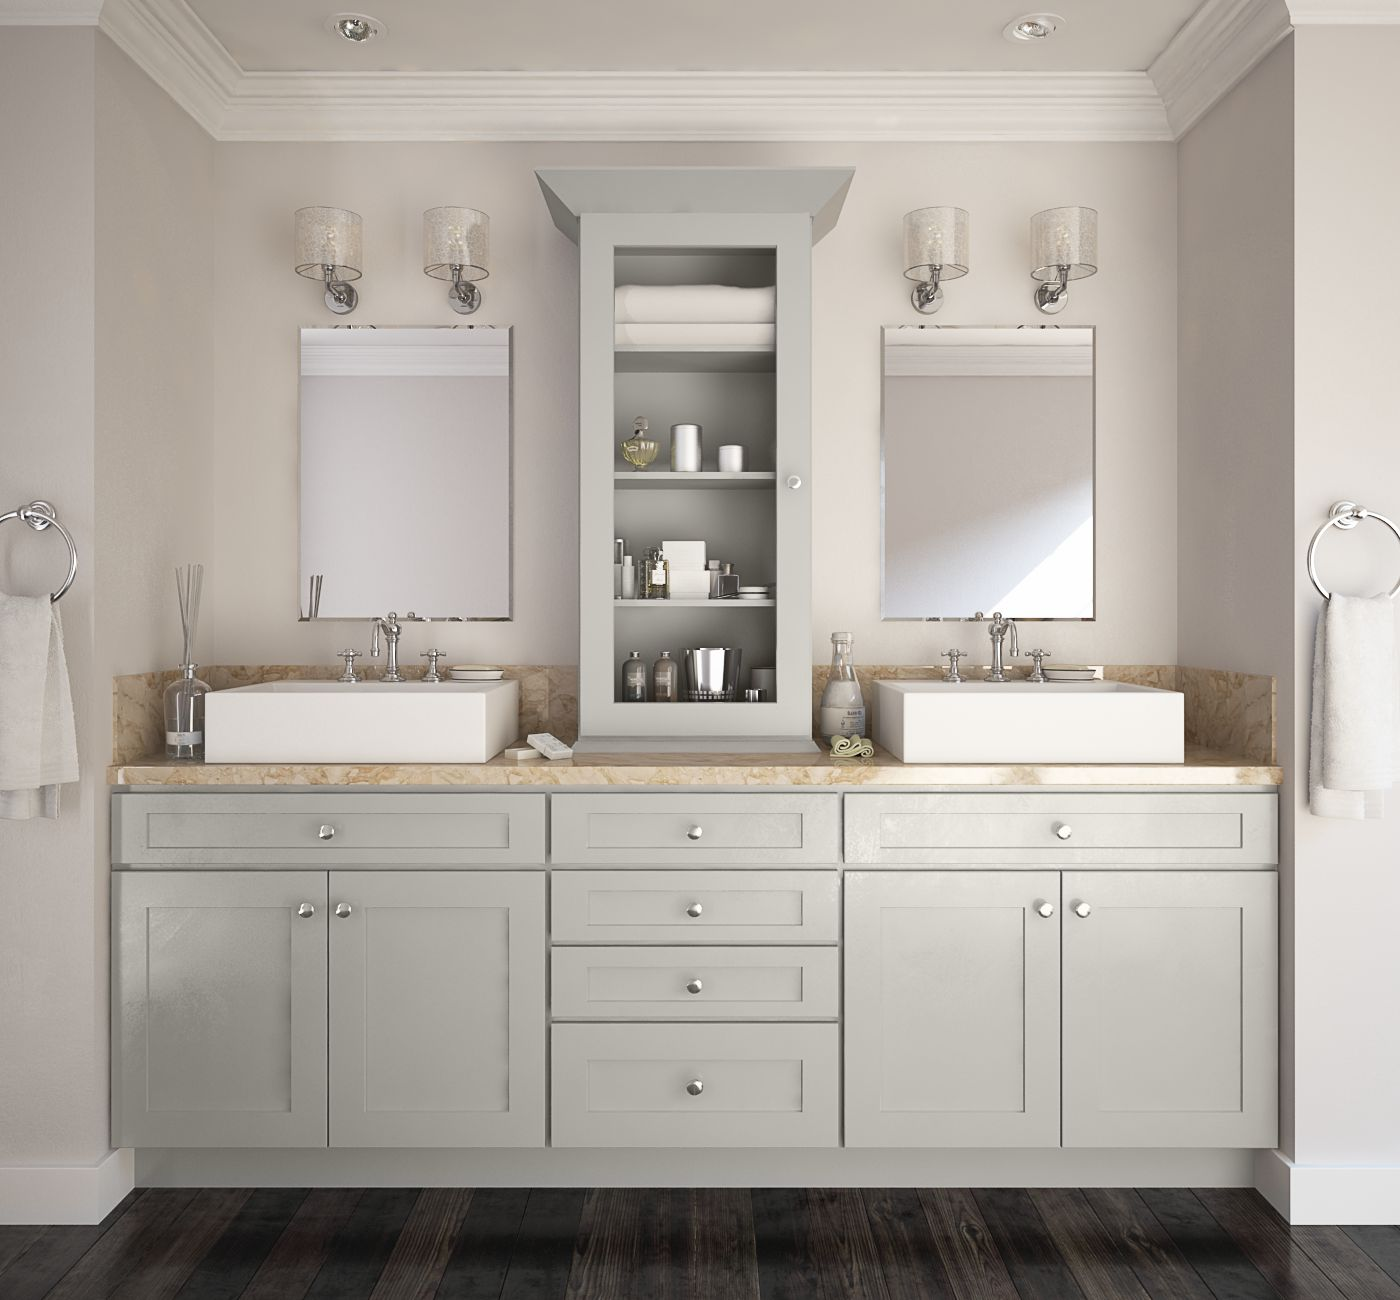 Society shaker steel gray pre assembled kitchen cabinets for Premade kitchen cabinets